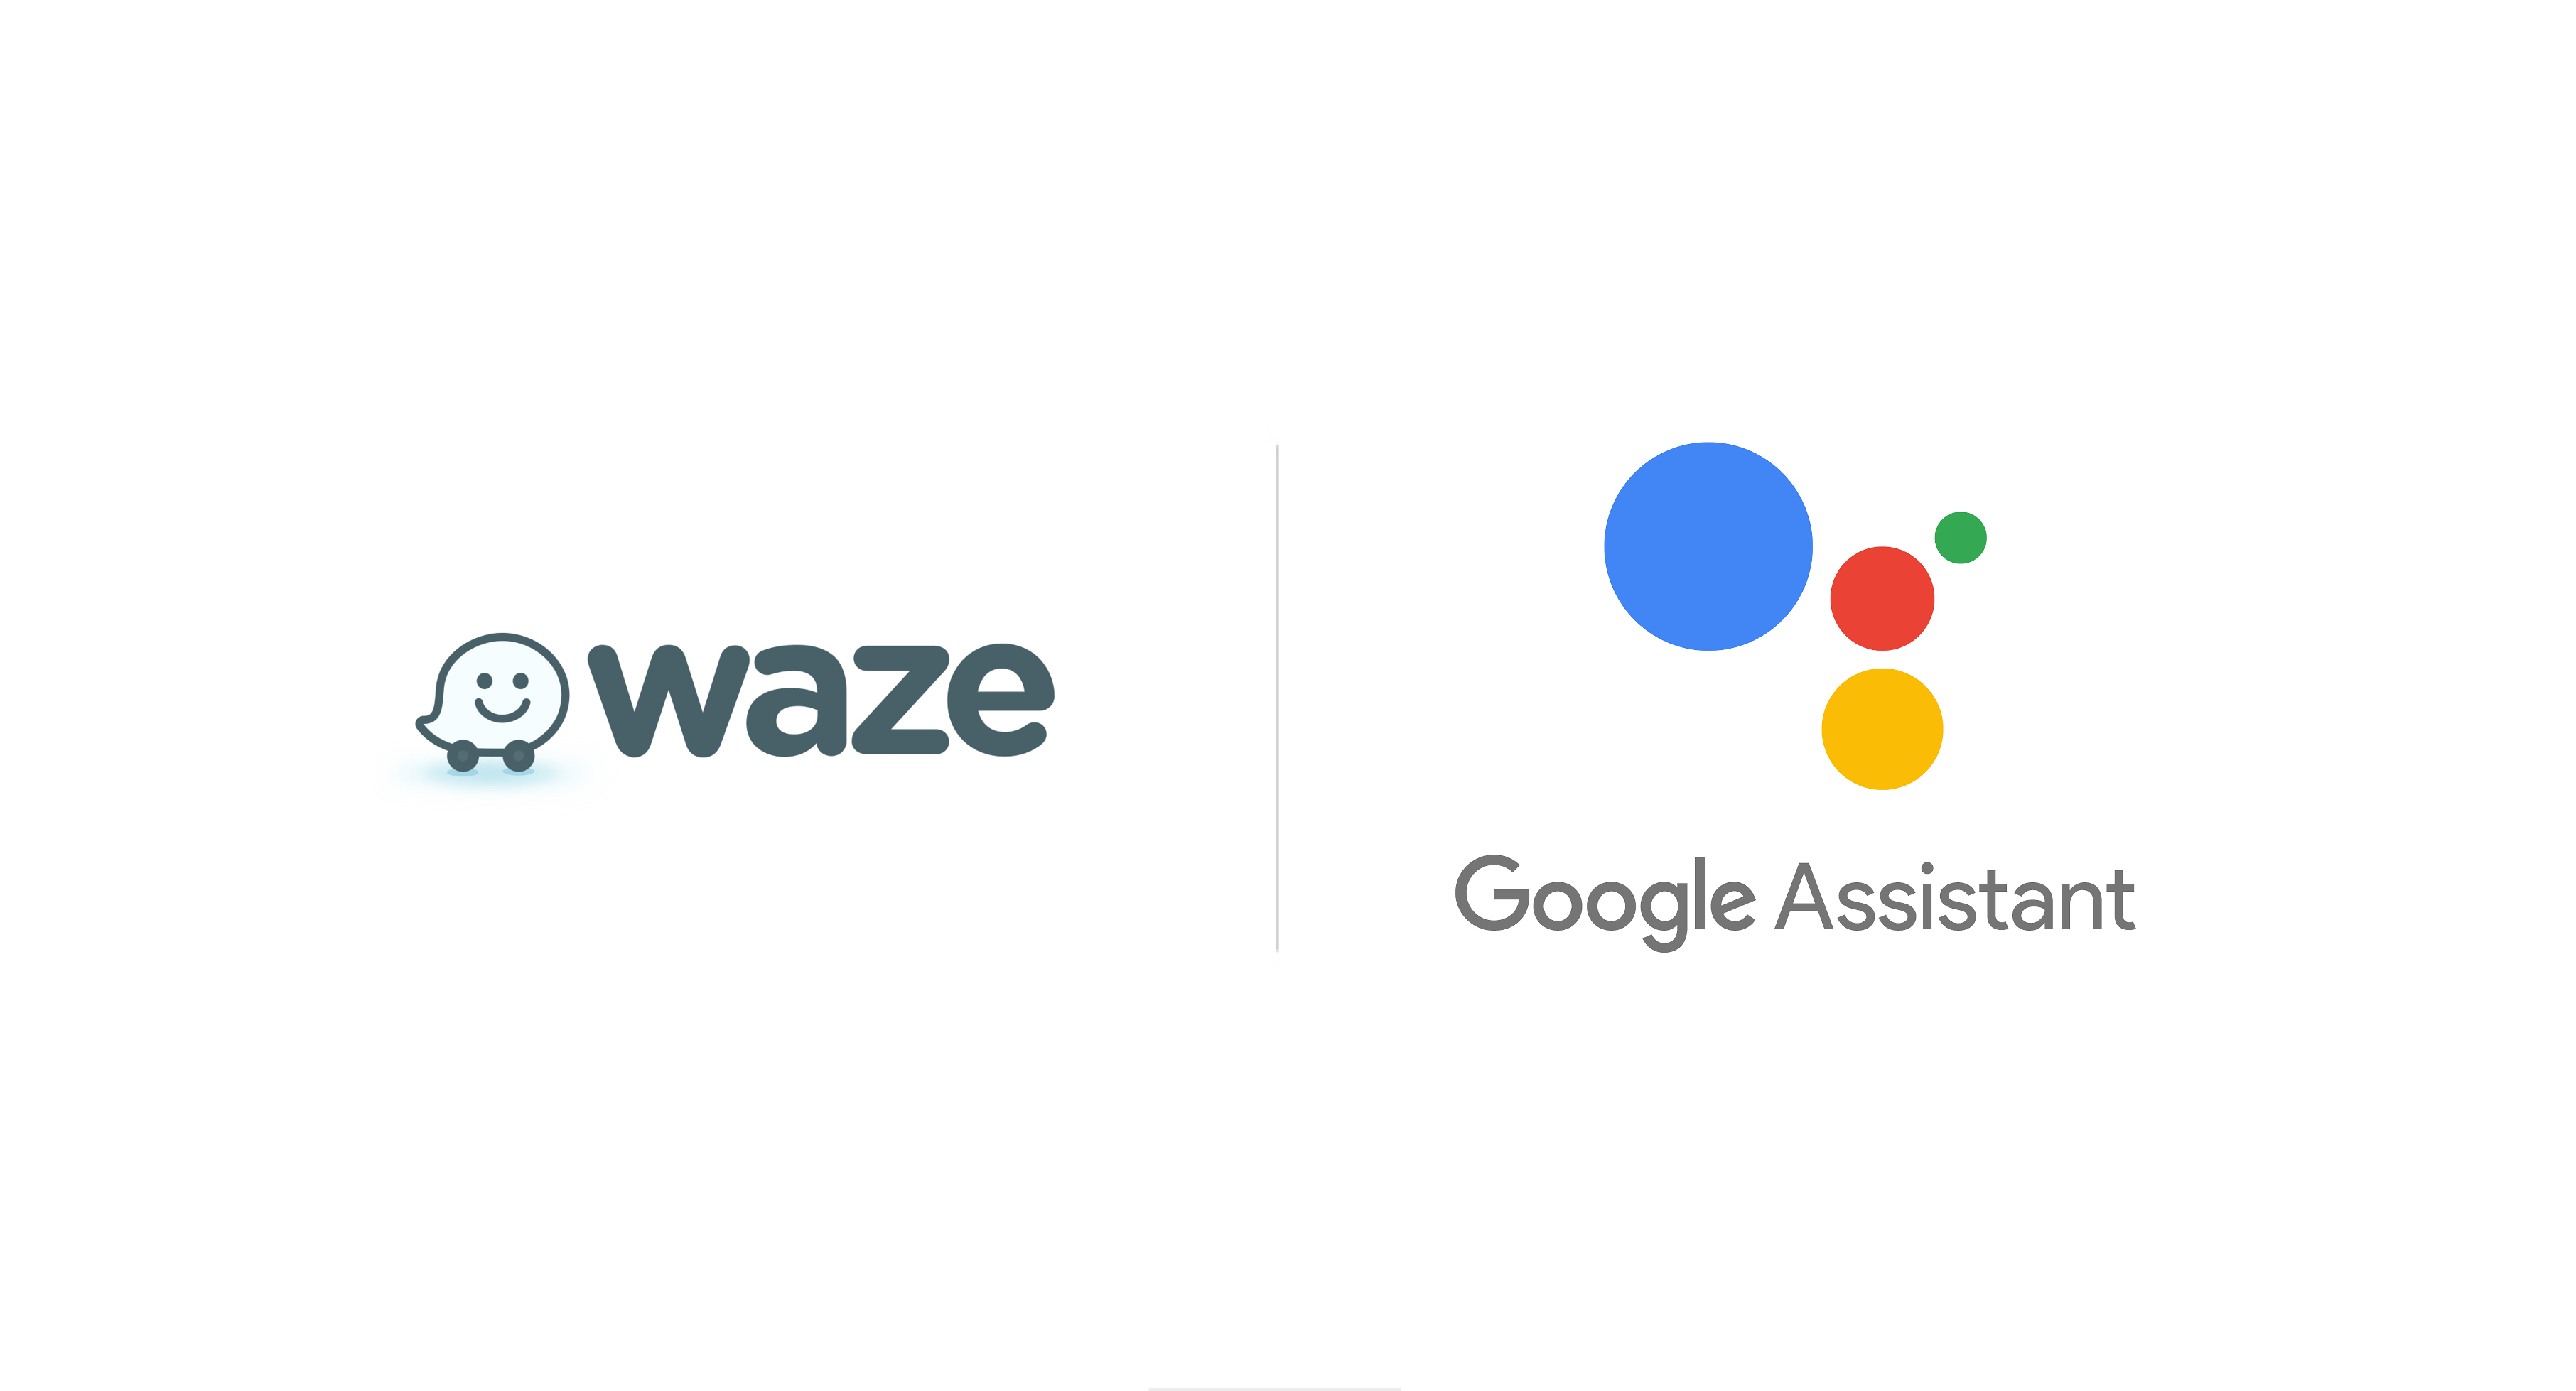 Google Assistant comes to Waze on Android phones